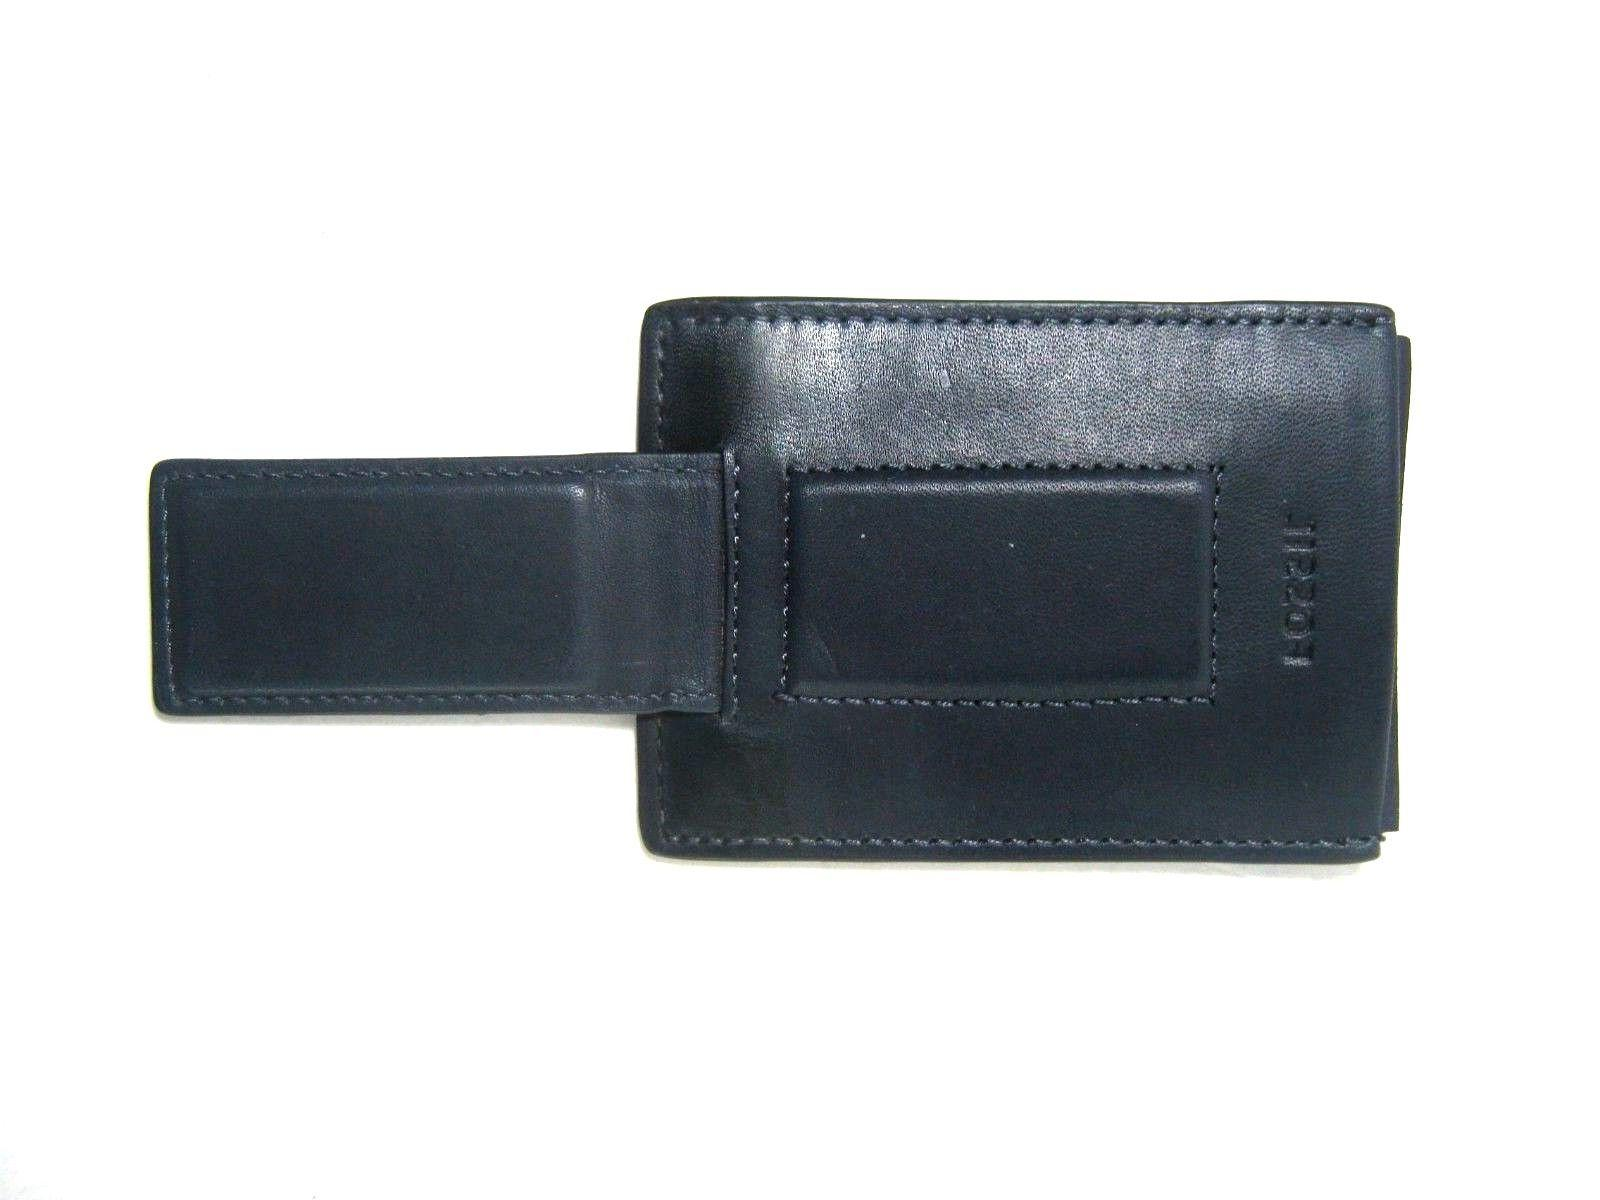 Fossil Security Blocking Magnetic Money Clip Card Case Wallet